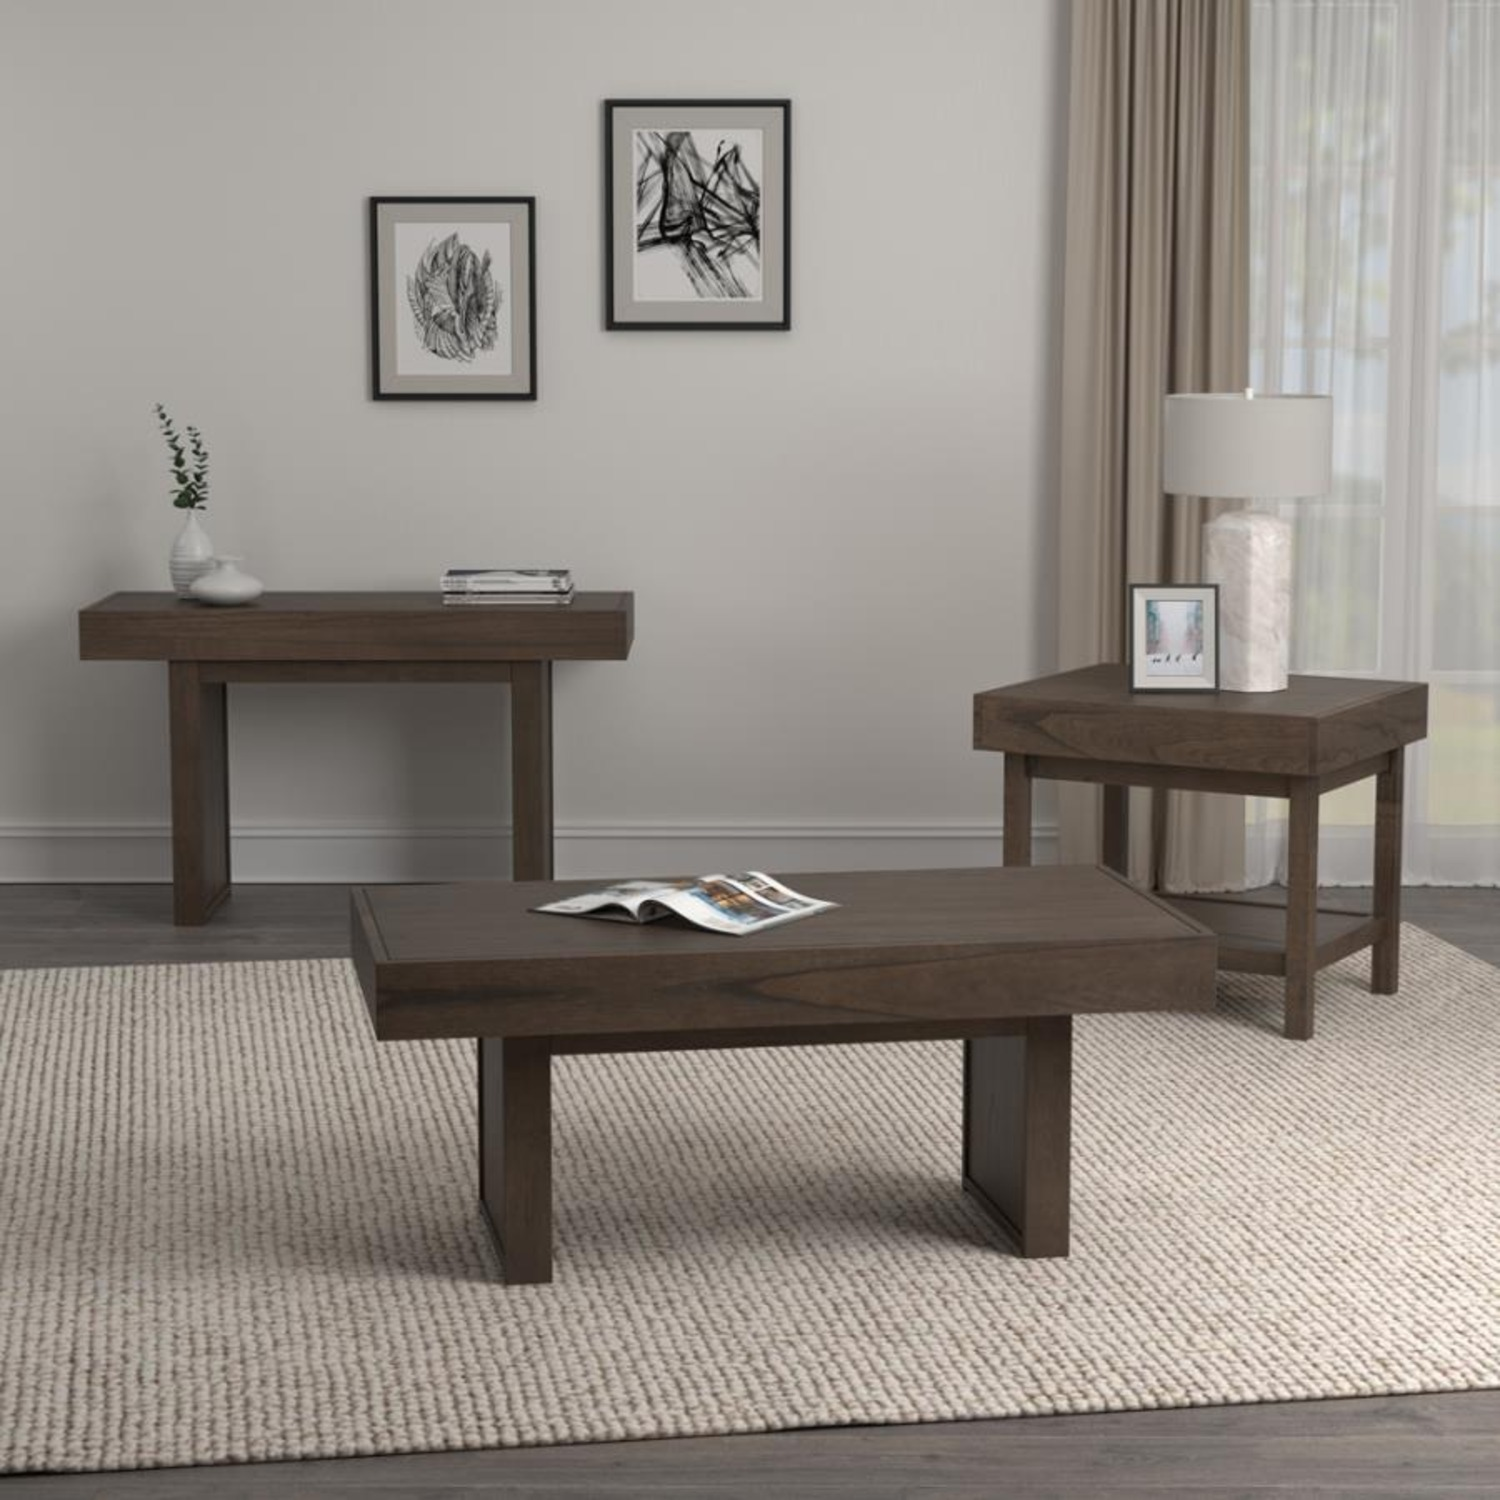 Coffee Table In Wheat Brown Finish - image-6